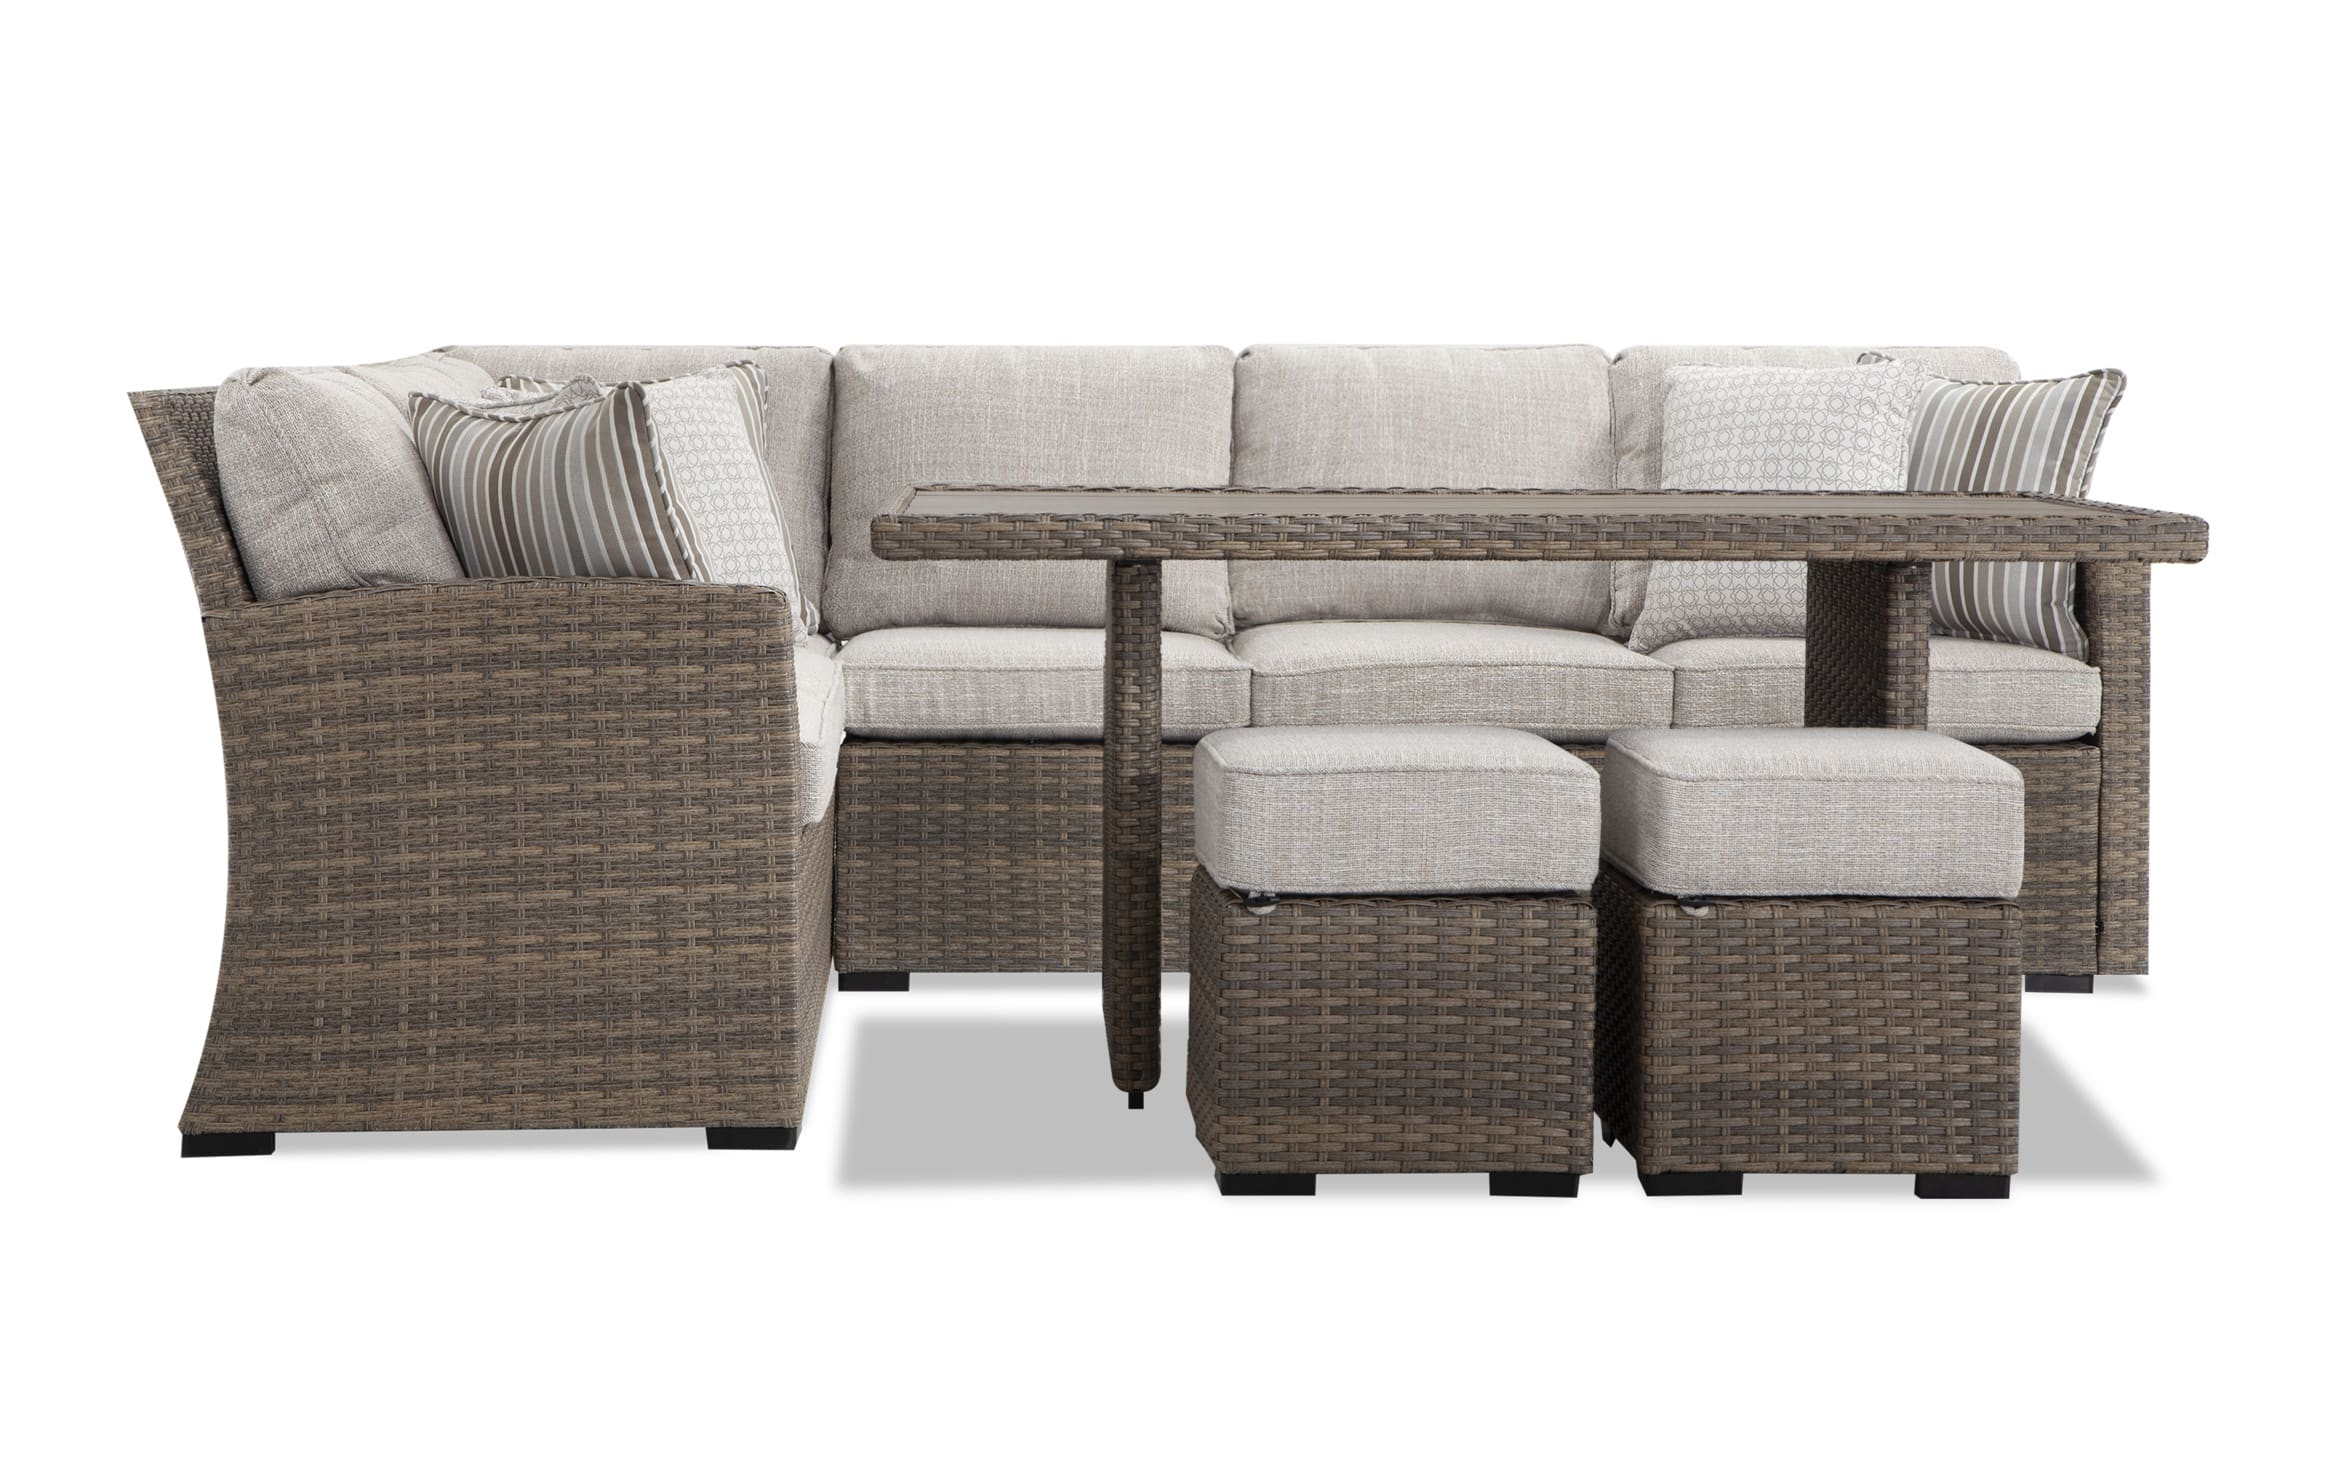 lennox 5 piece outdoor dining set with cover